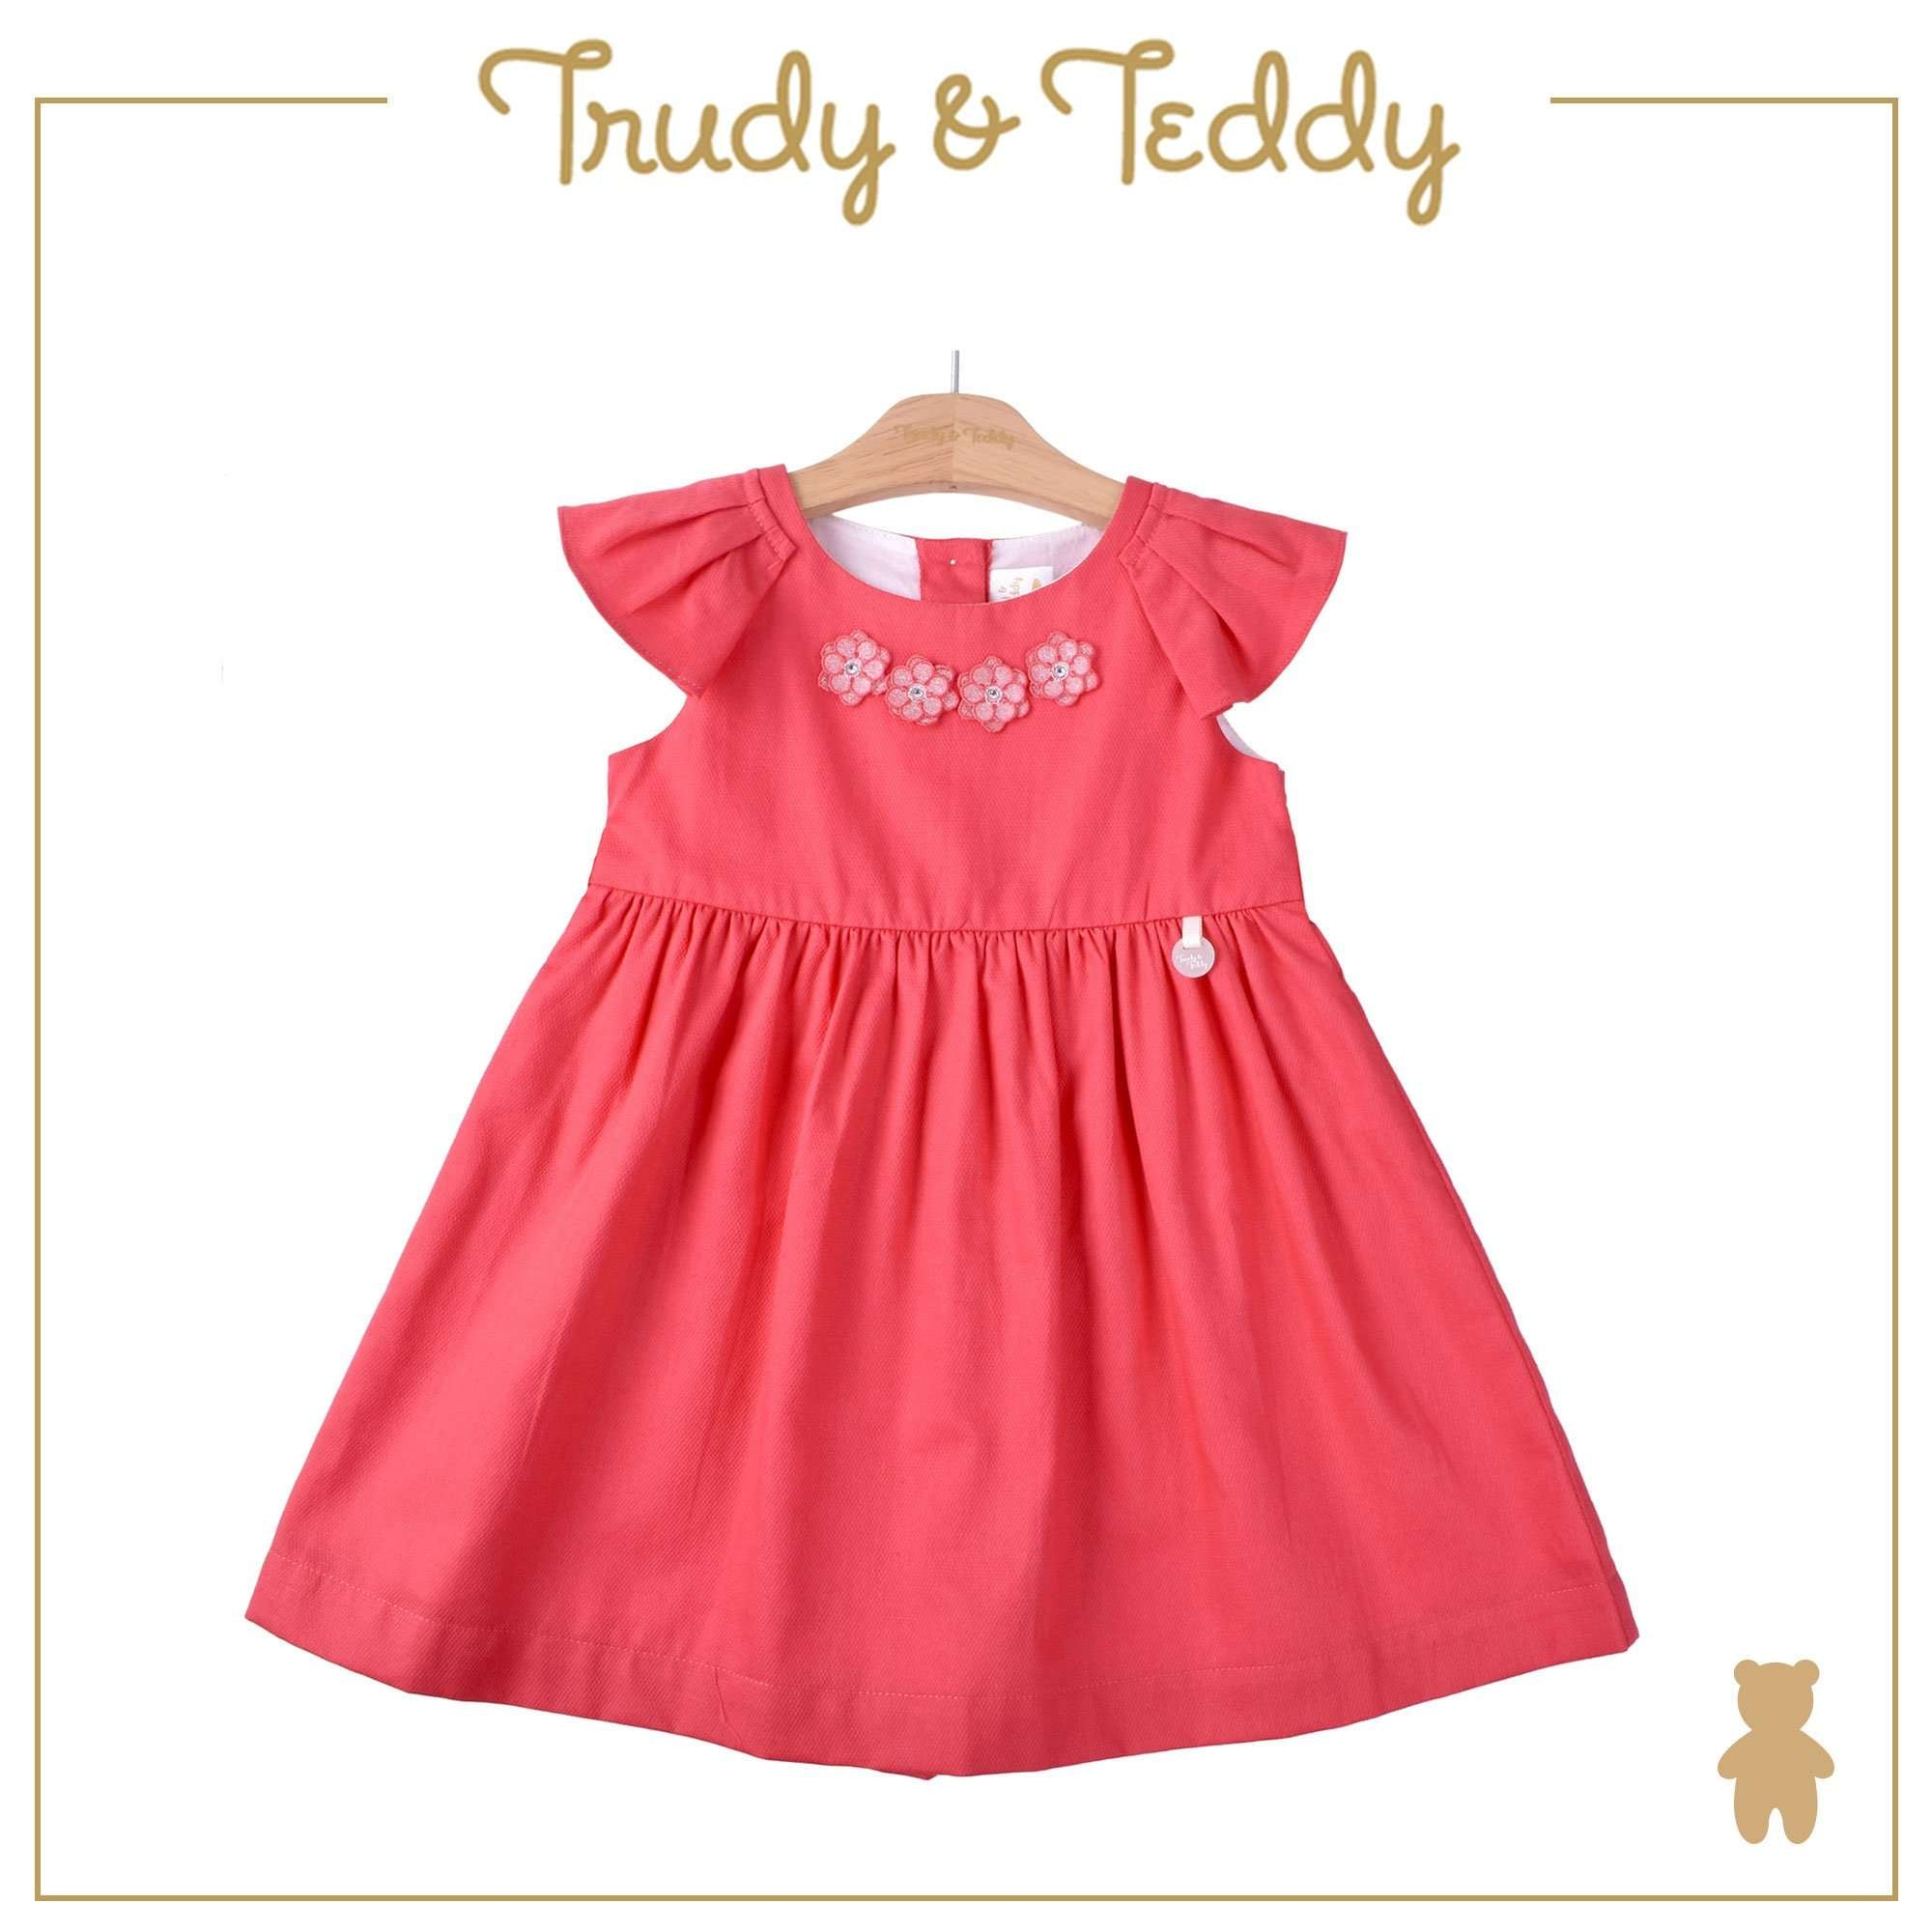 Trudy & Teddy Toddler Girl Woven Short Sleeve Dress- Red 815164-311 : Buy Trudy & Teddy online at CMG.MY